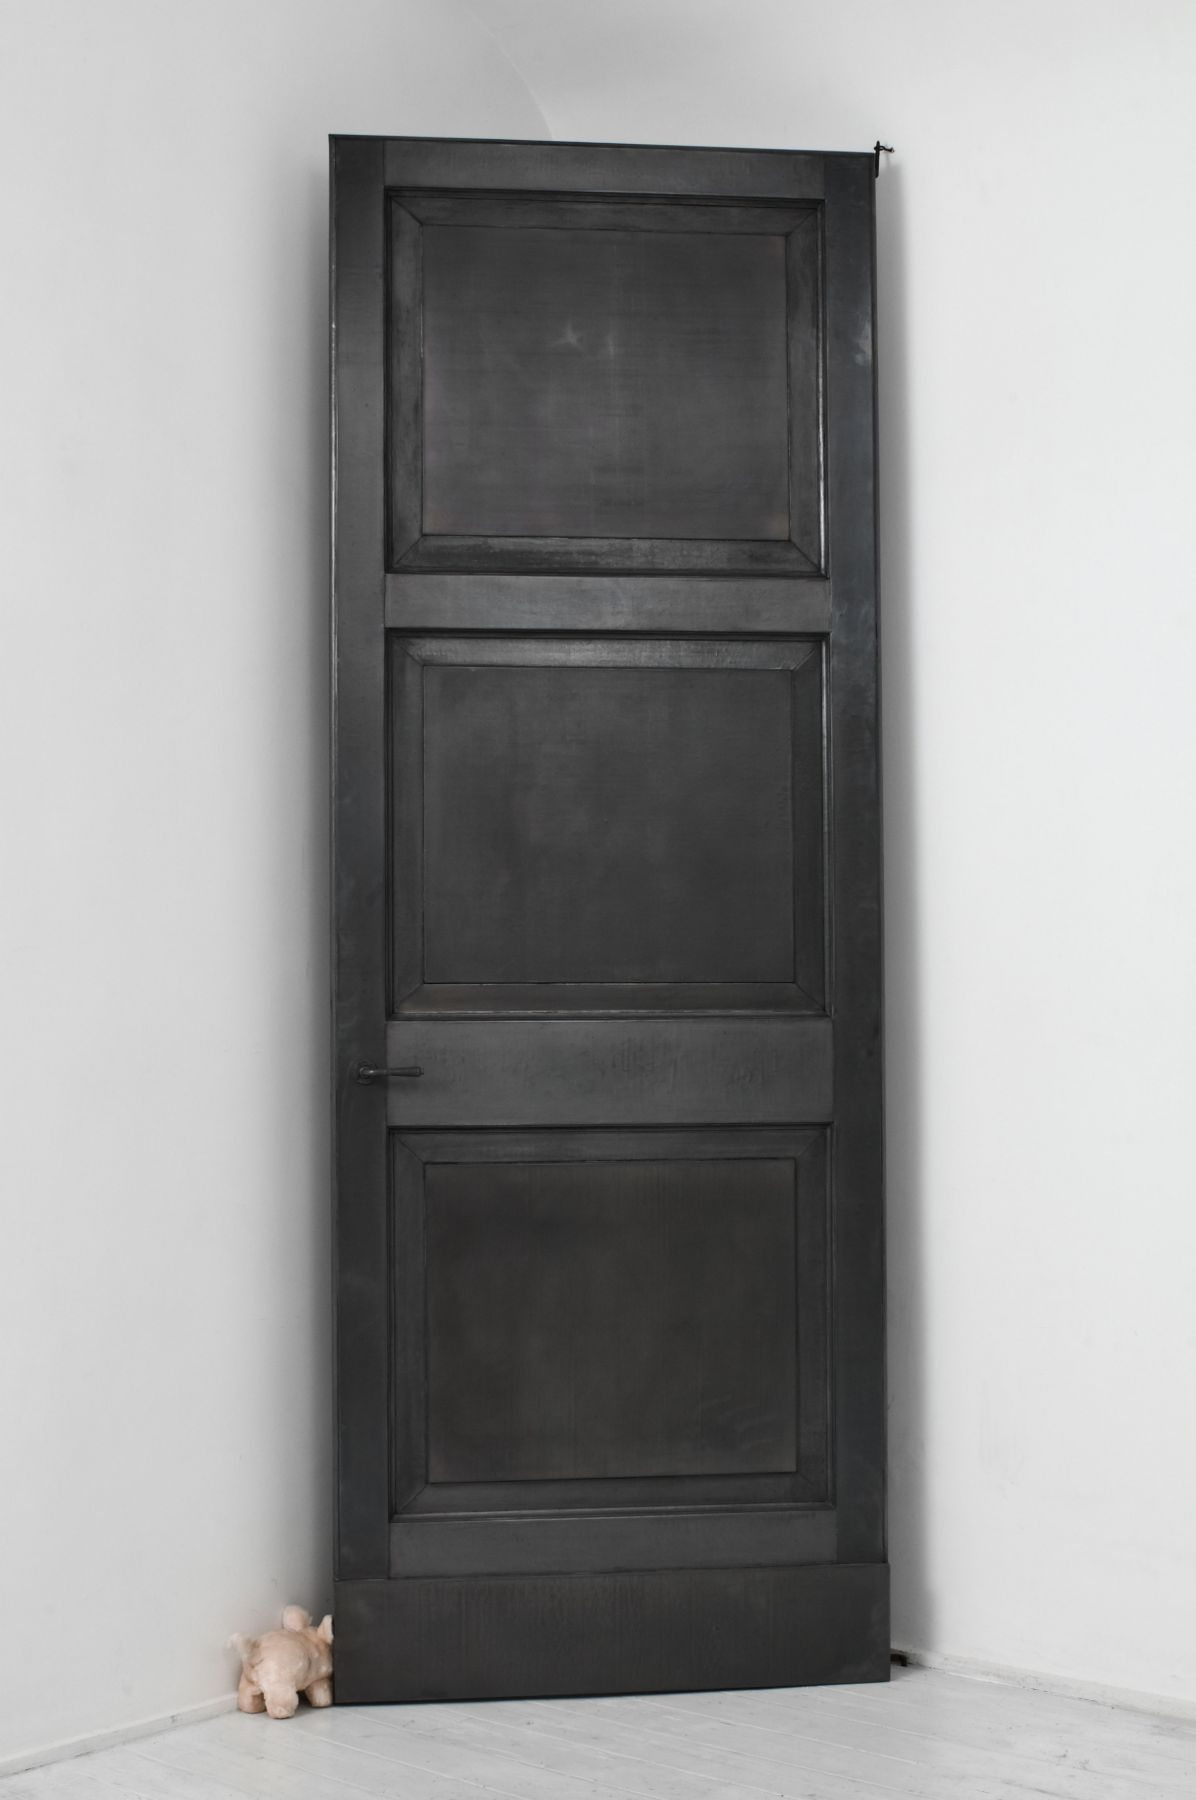 black door with small toy by pier paolo calzolari